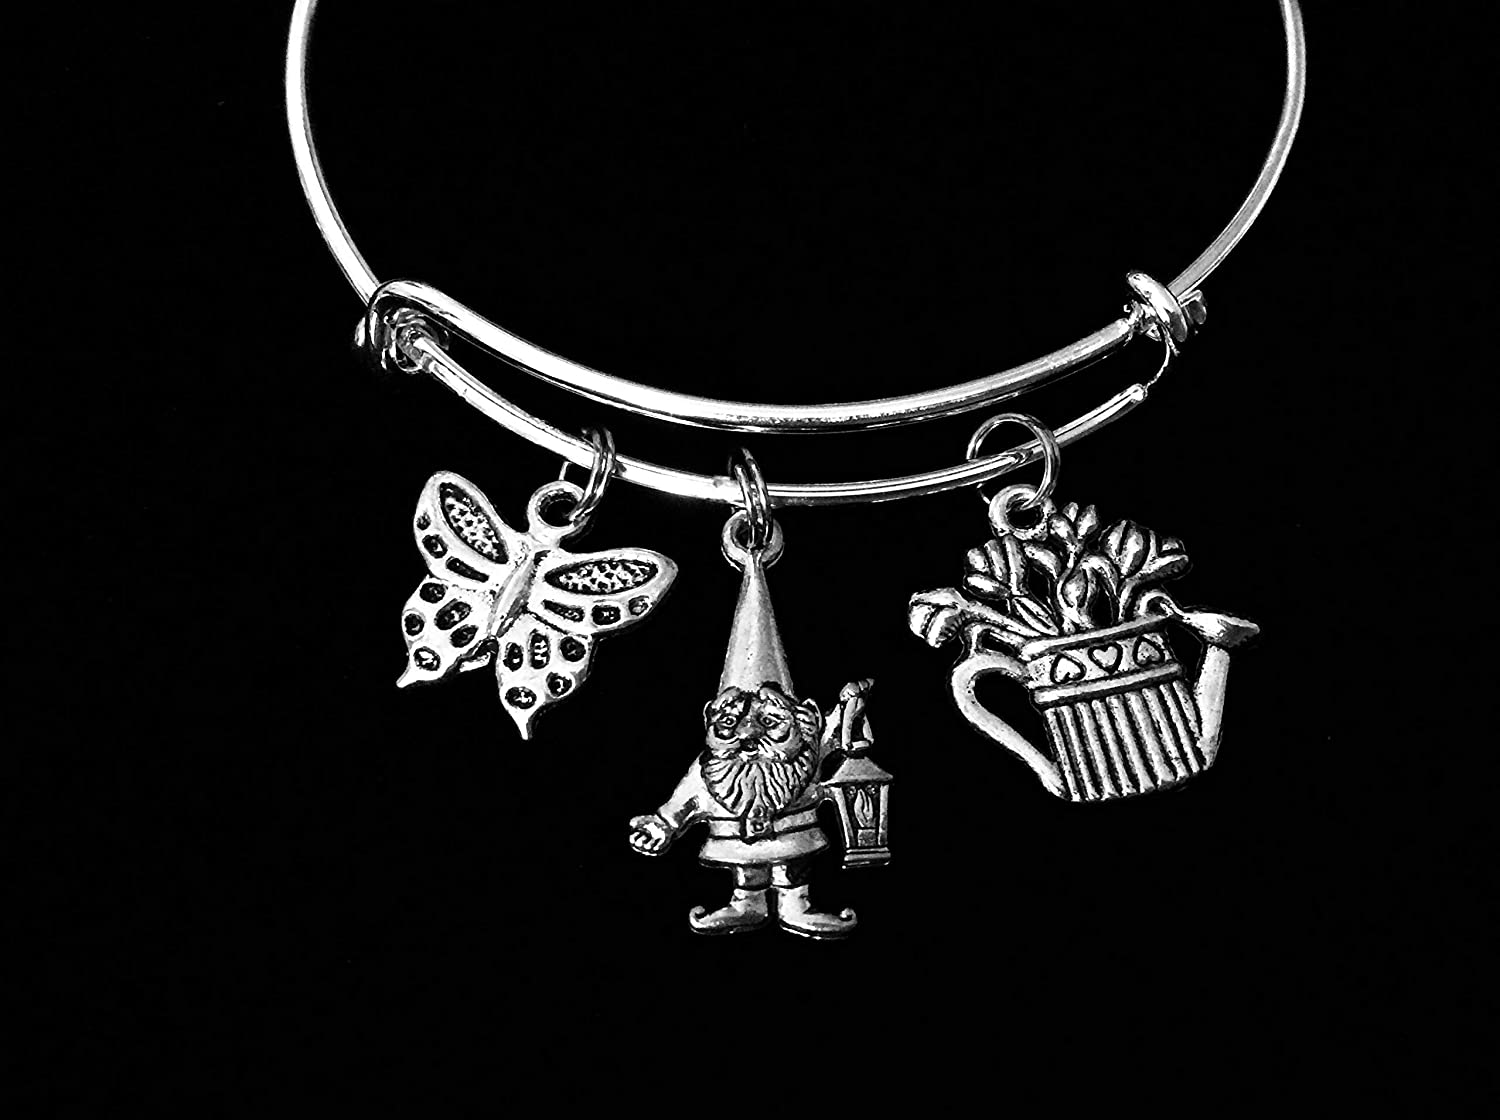 Garden Gnome Gardeners Bracelet Adjustable Charm Bracelet Silver Expandable Bangle One Size Fits All Gift Butterfly Flowers Planter Custom and Personalization Options Available